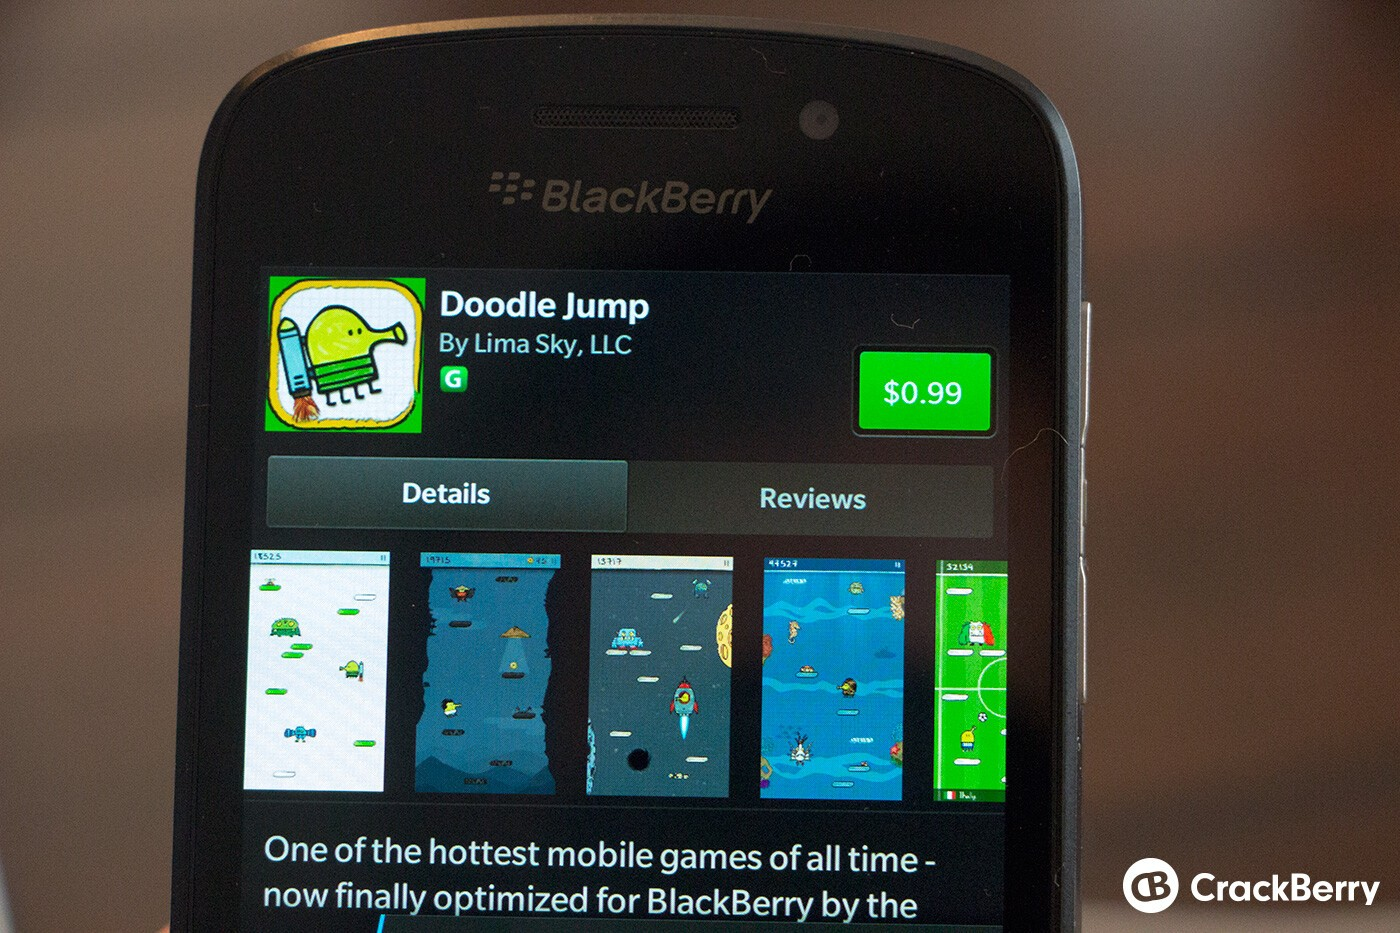 Doodle Jump Now Available For Blackberry 10 Crackberrycom